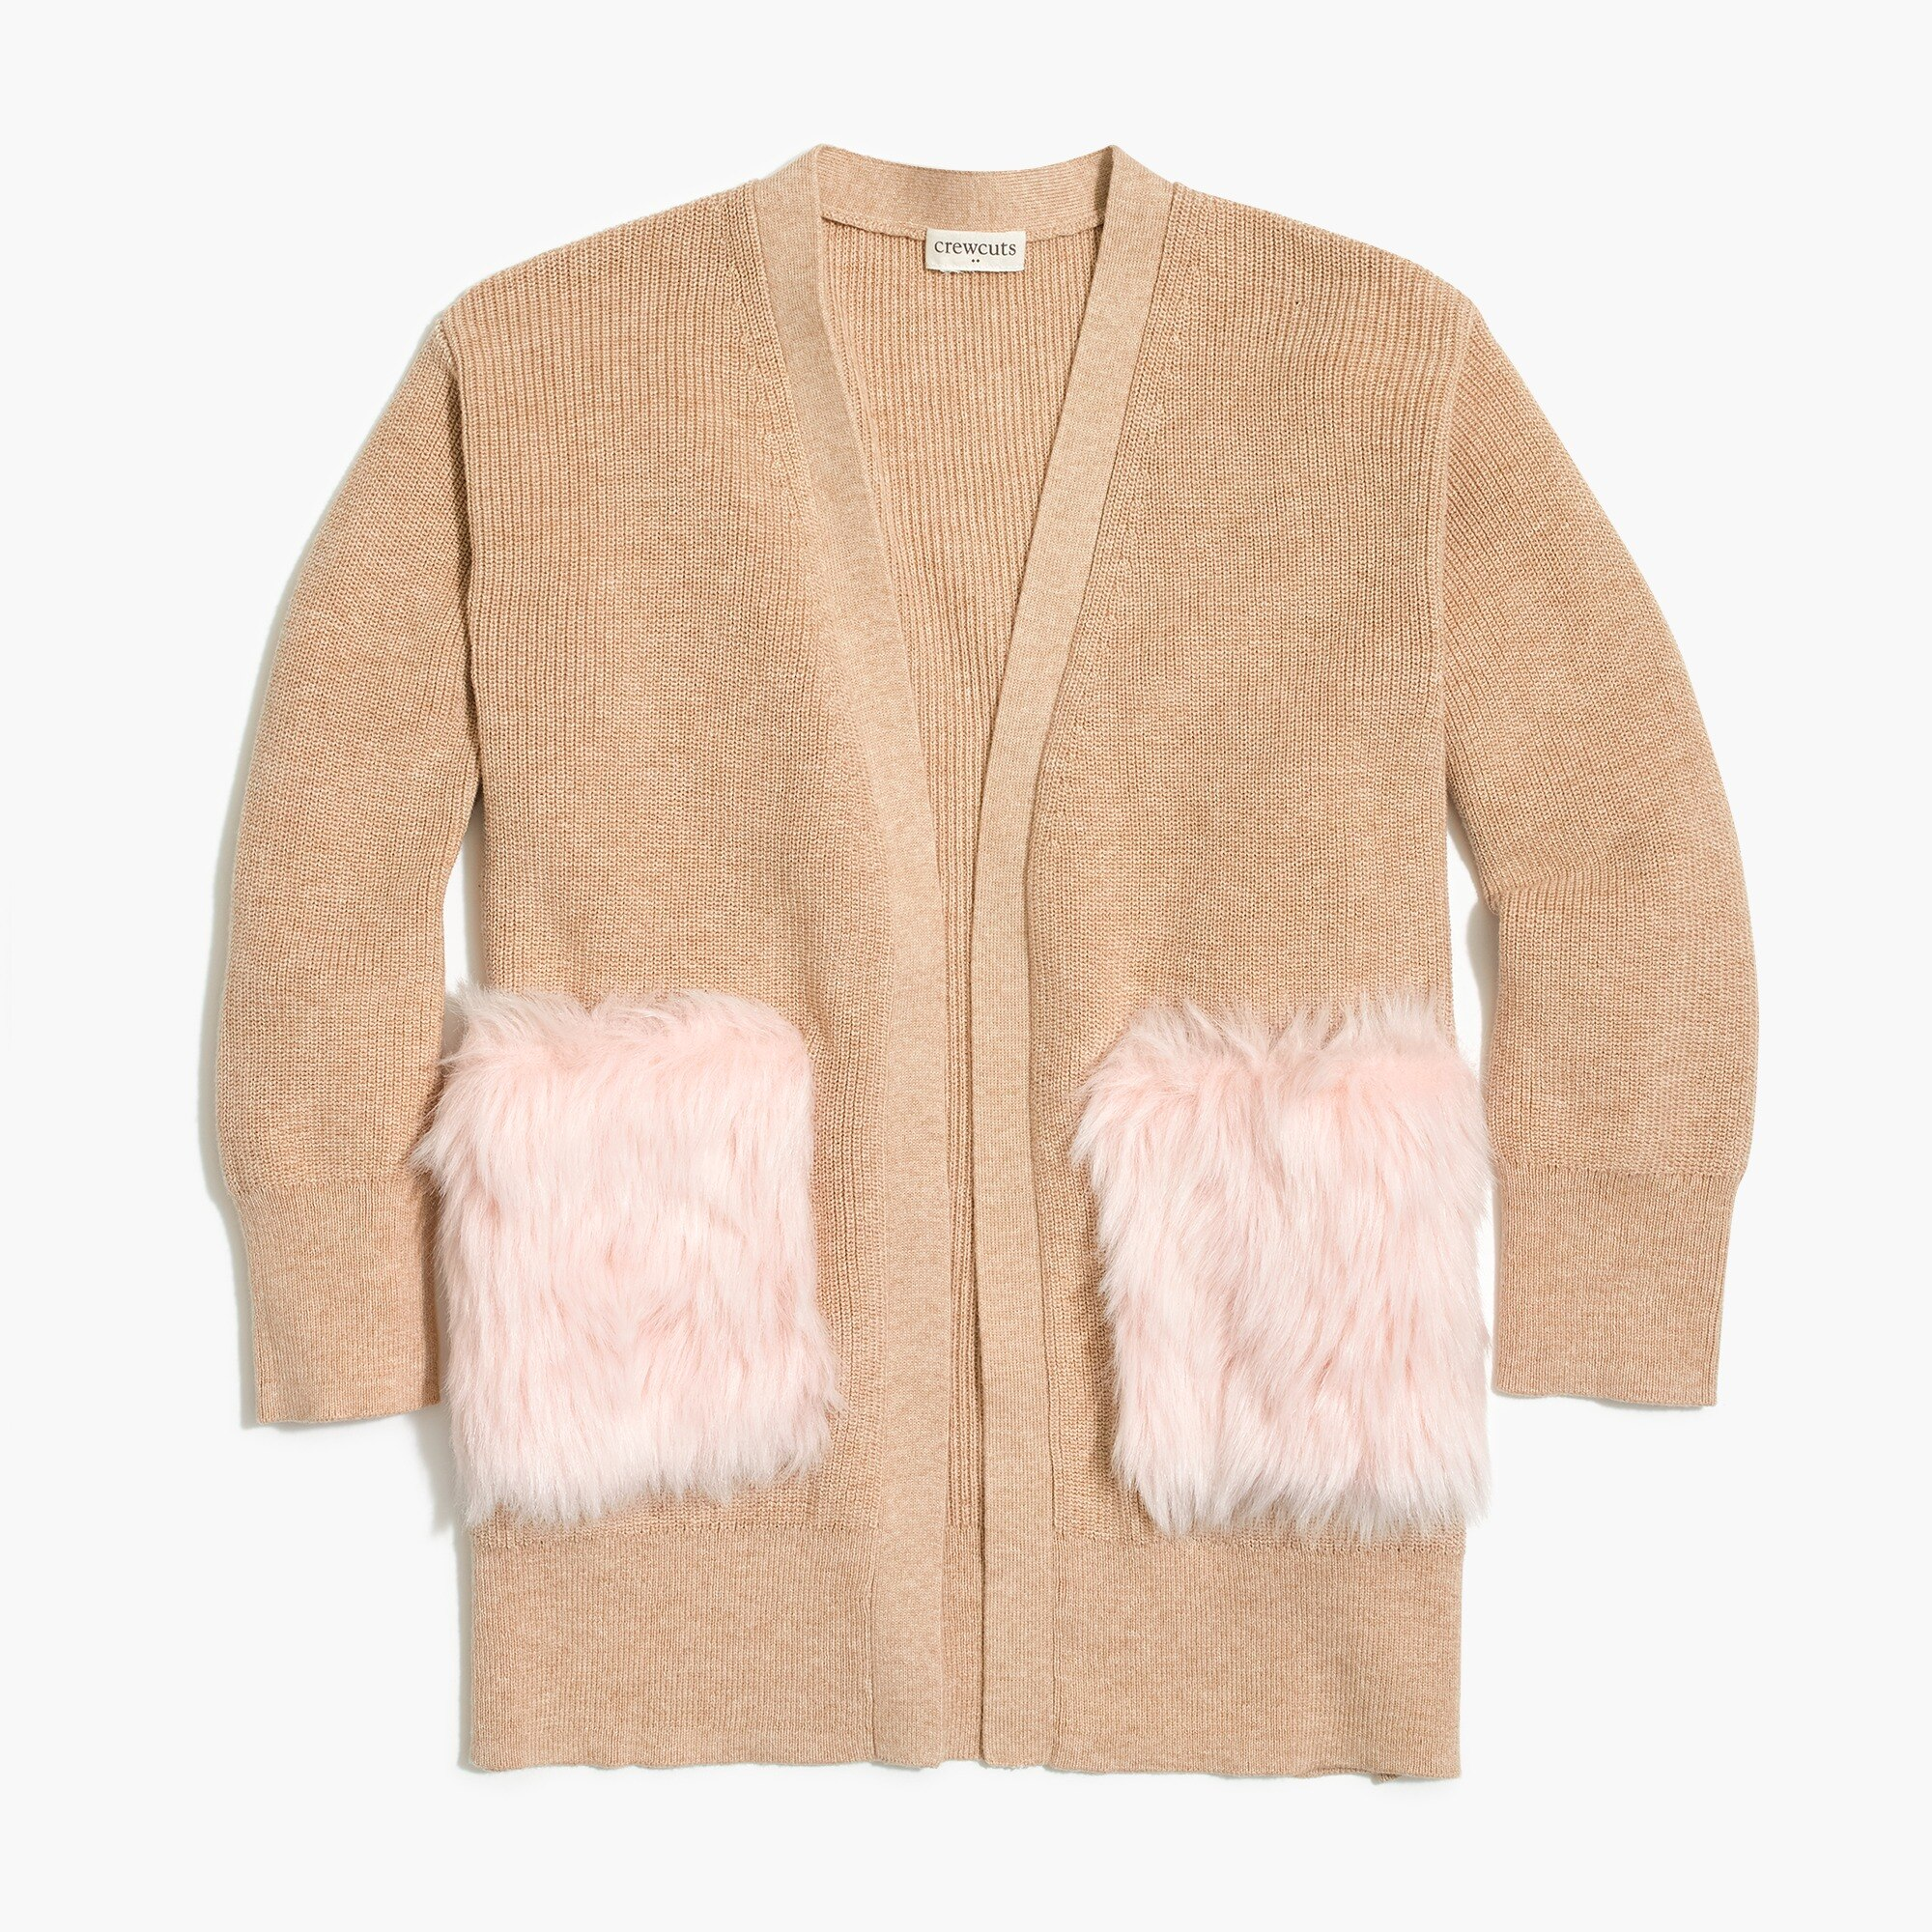 JCrew Factory Girls' long cardigan sweater with fur pockets $25